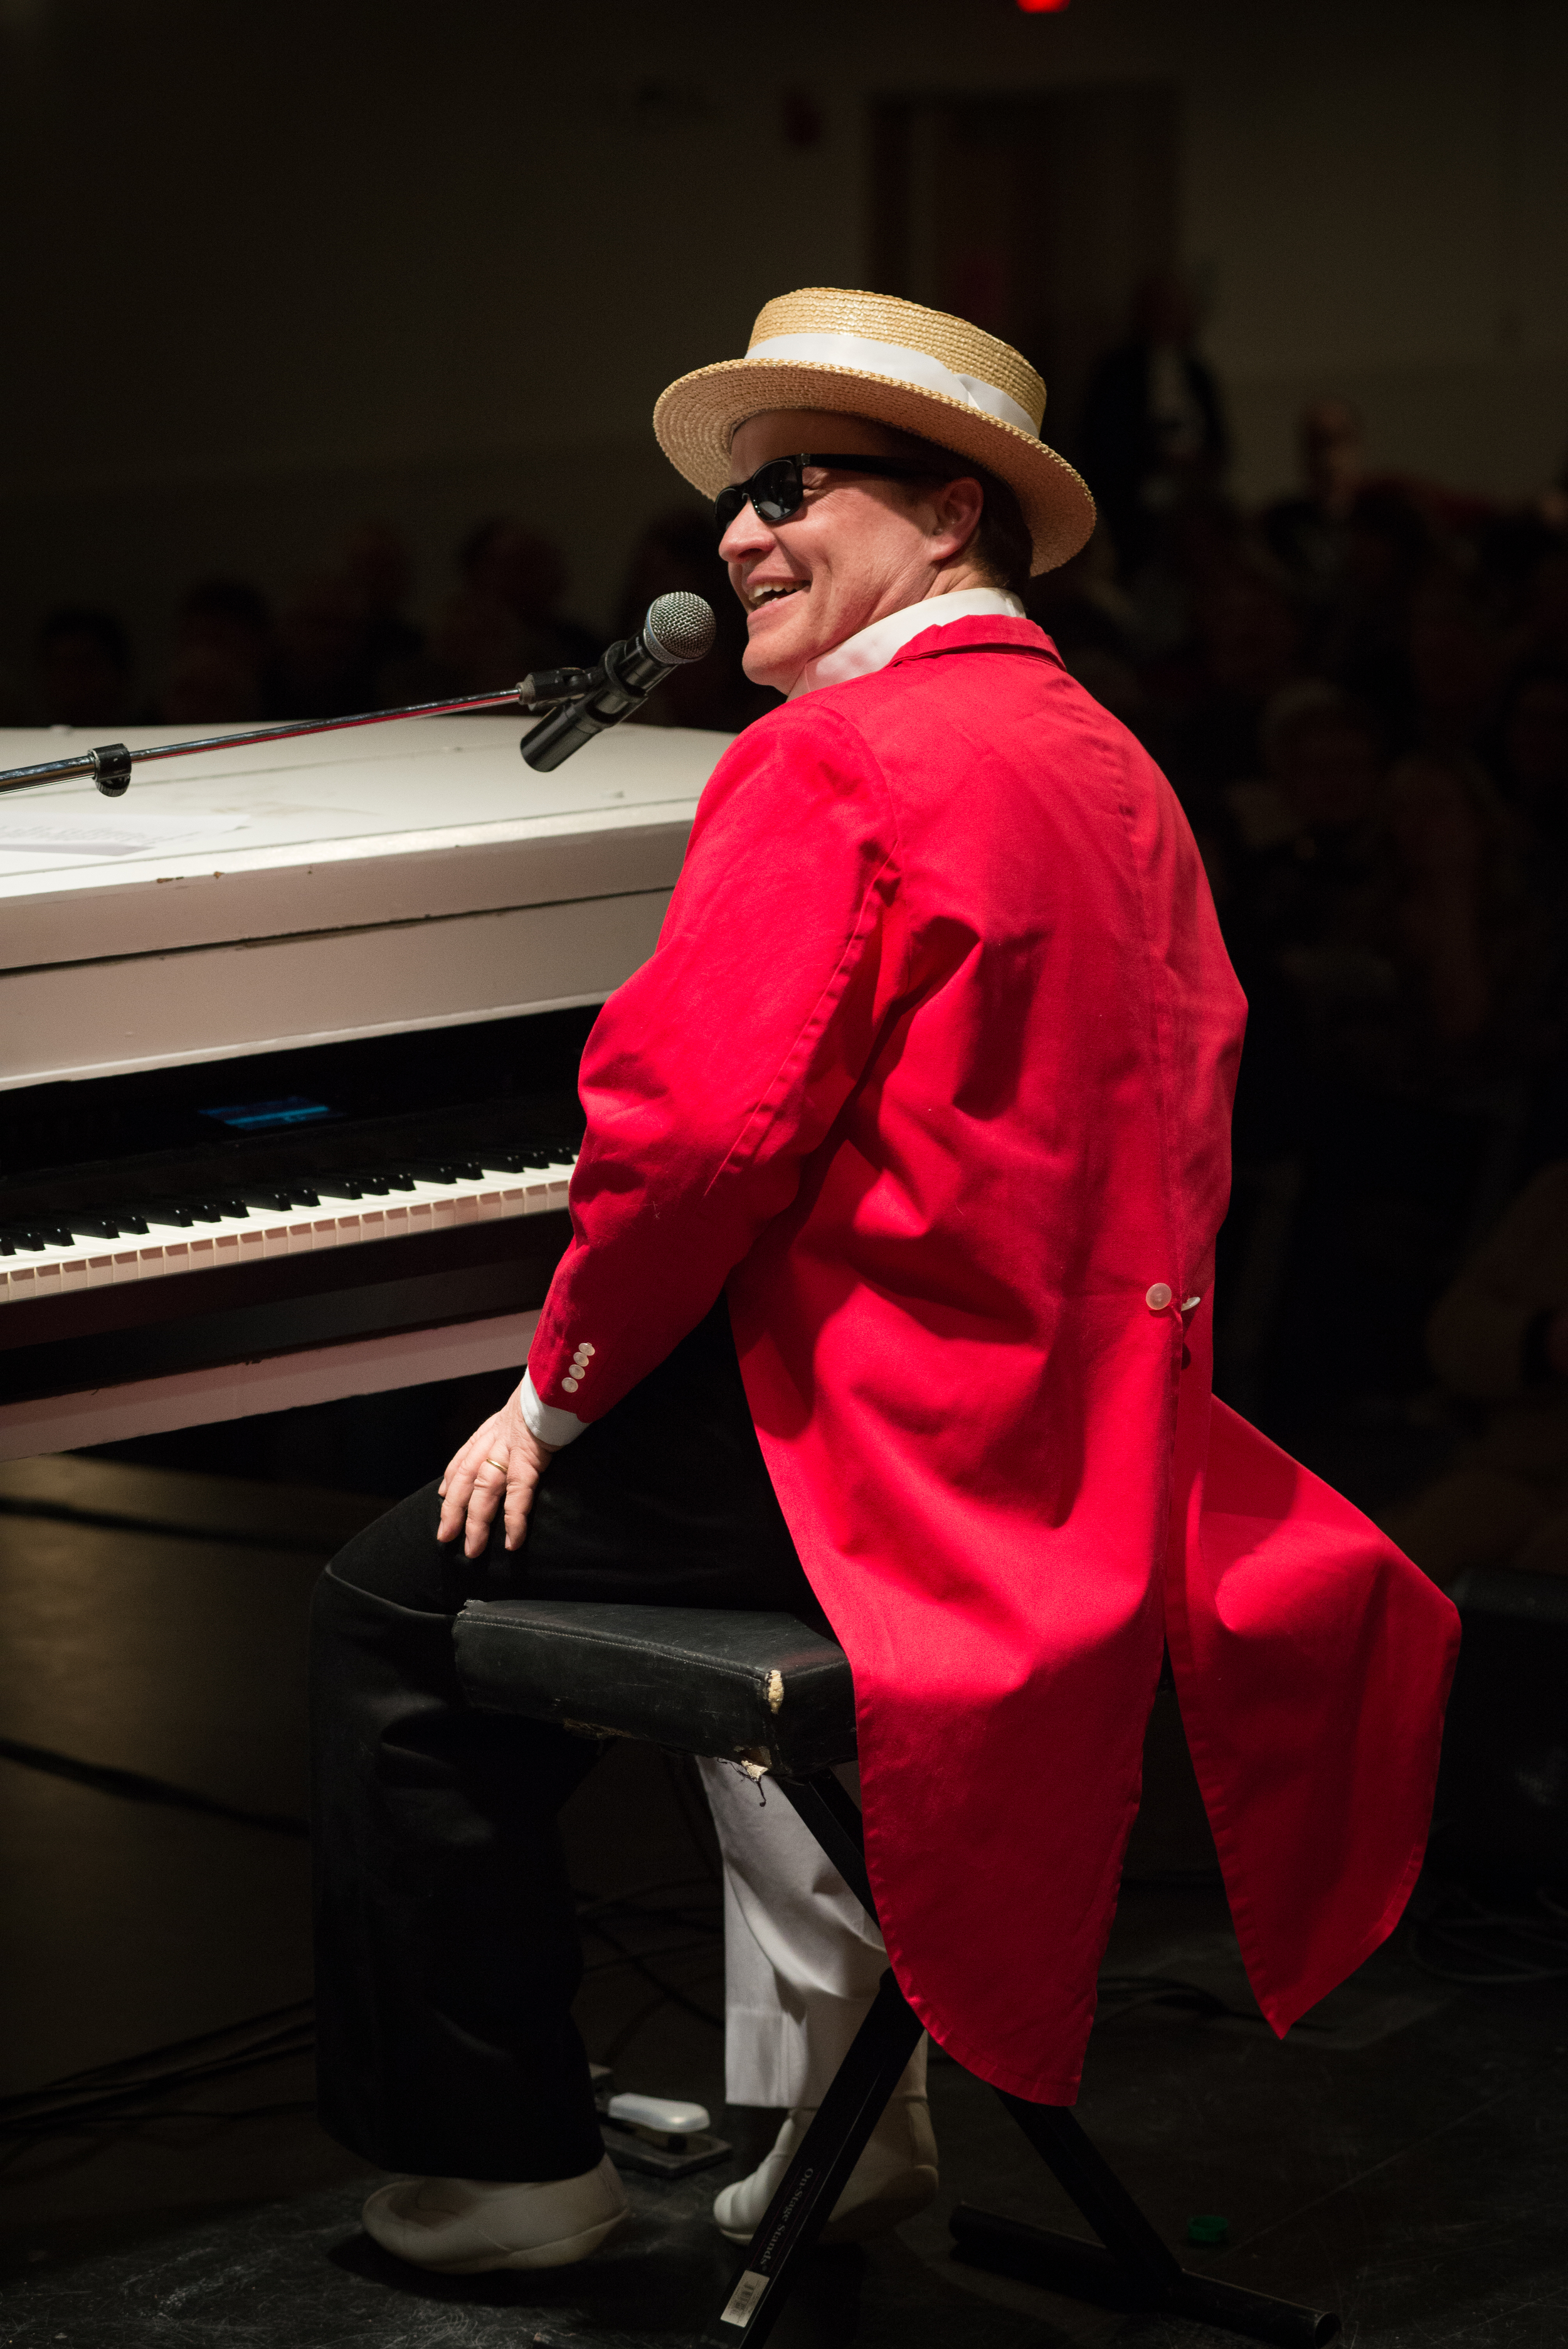 Pianist in Red